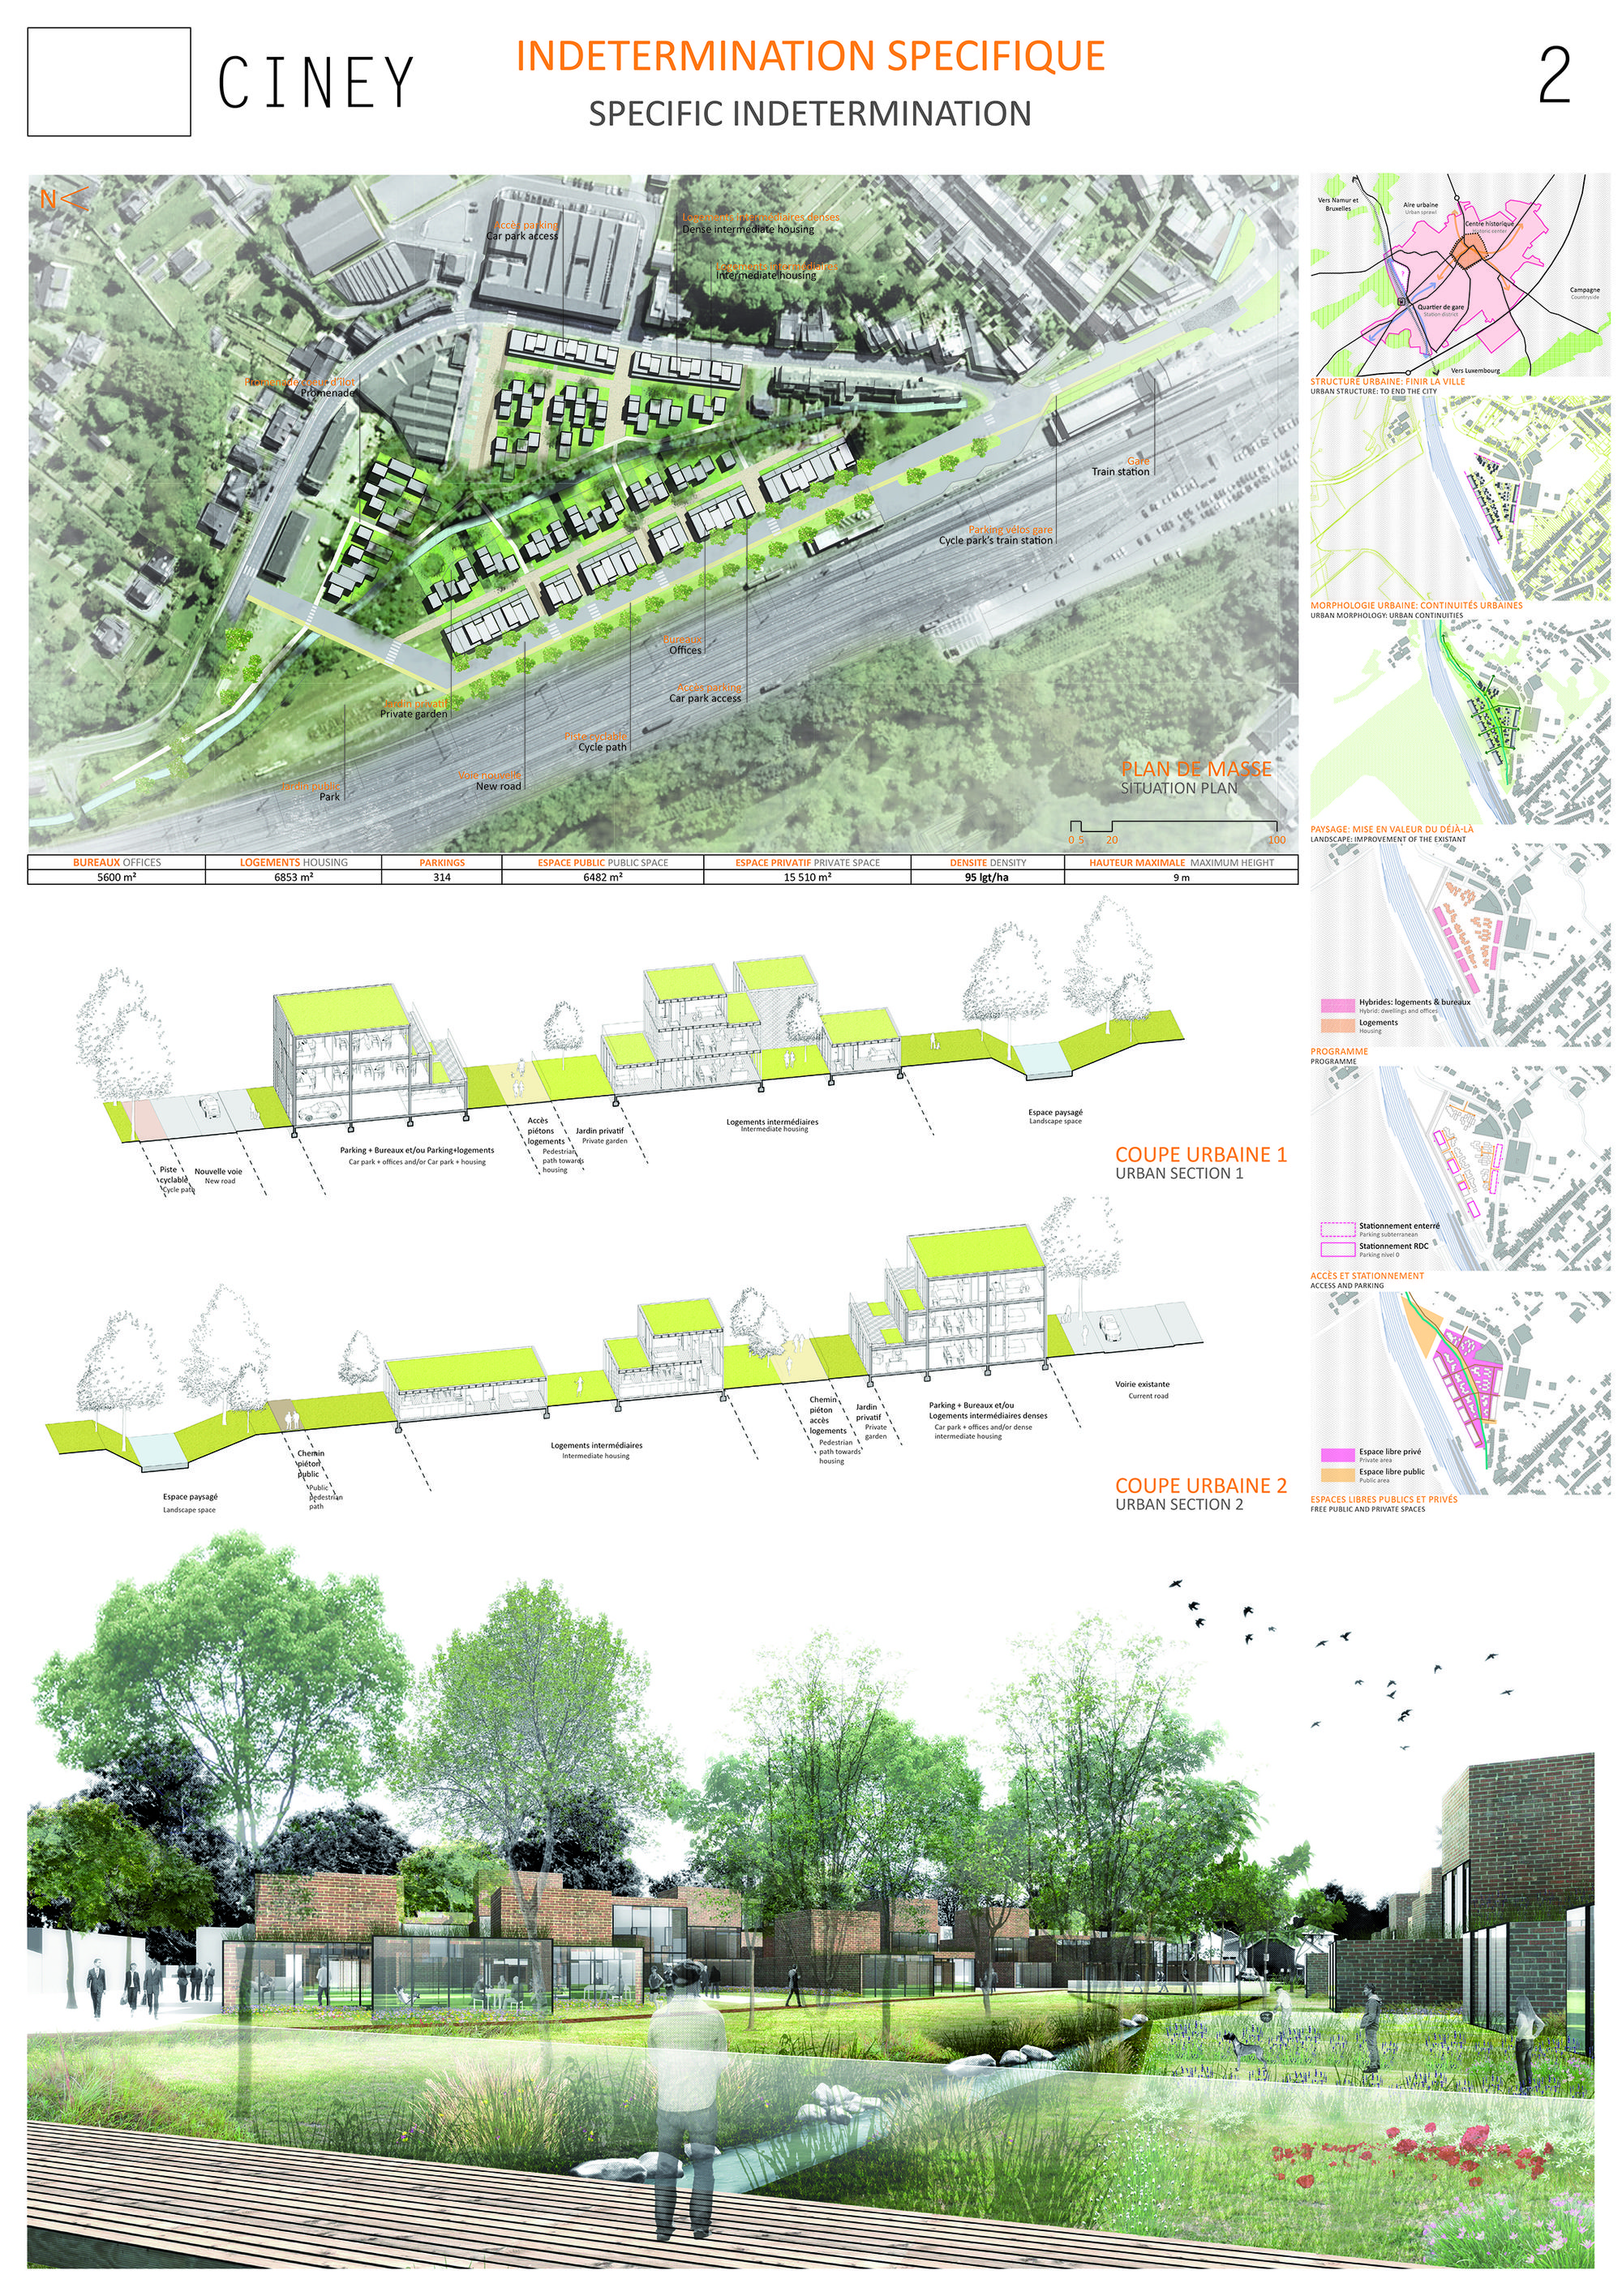 1000 Images About Landscape On Pinterest Master Plan Daniel O